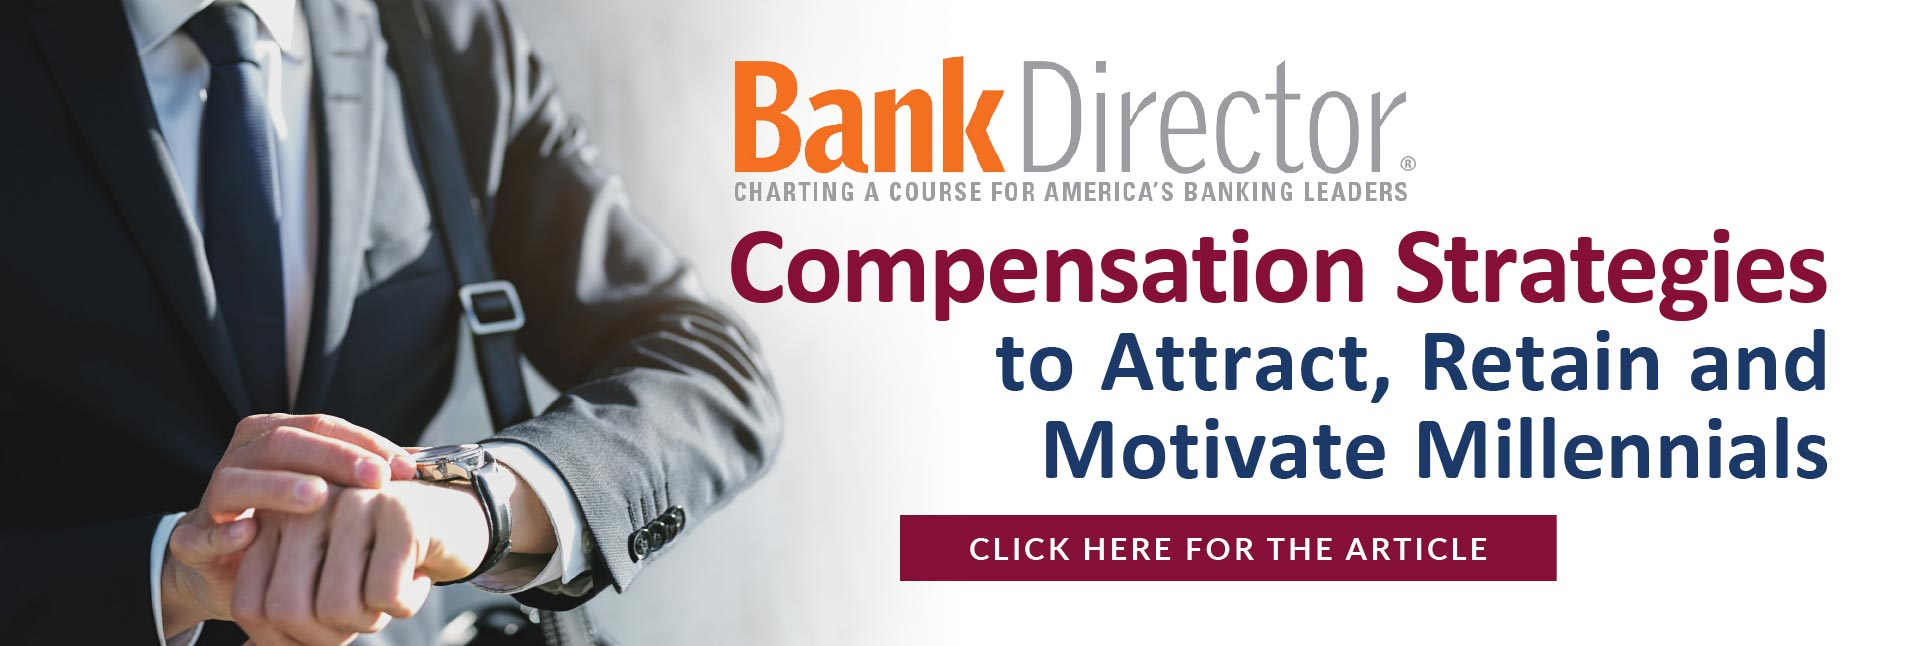 Bank Director - Compensation Strategies to Attract, Retain and Motivate Millennials